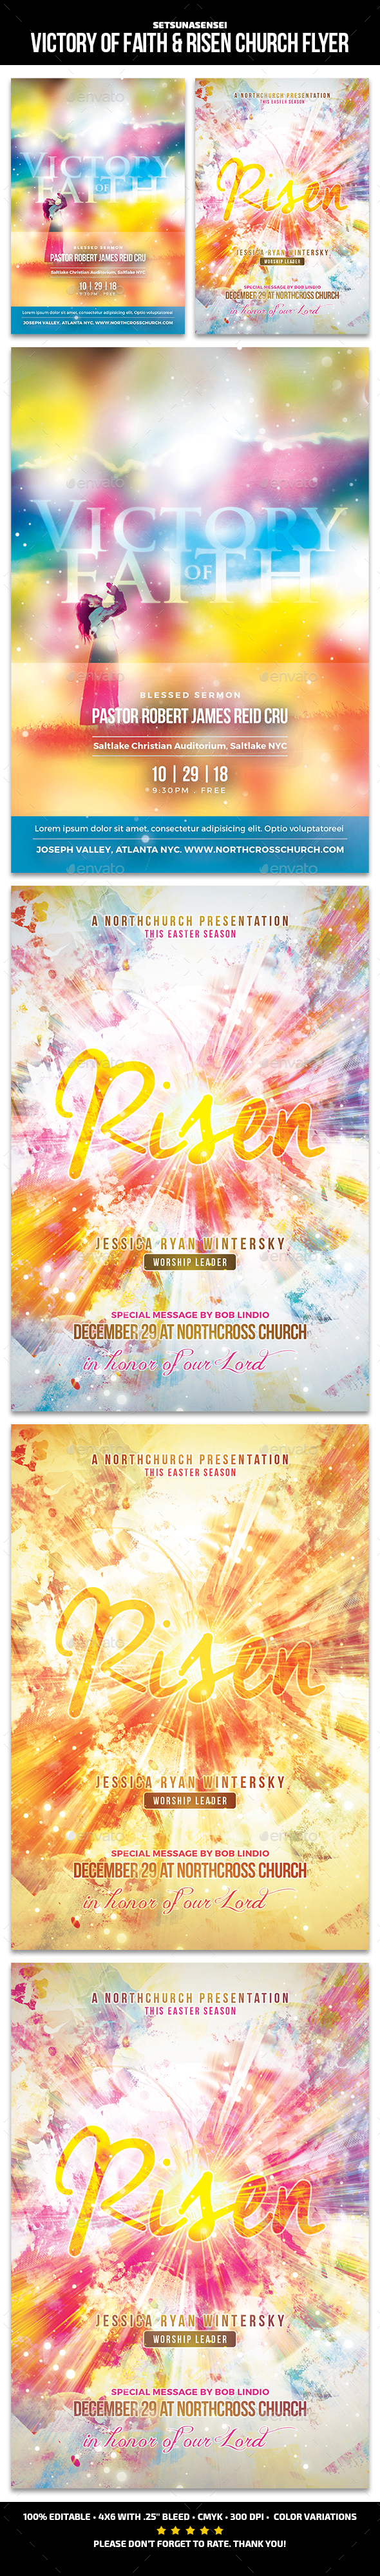 Victory of Faith & Risen Church - Church Flyers